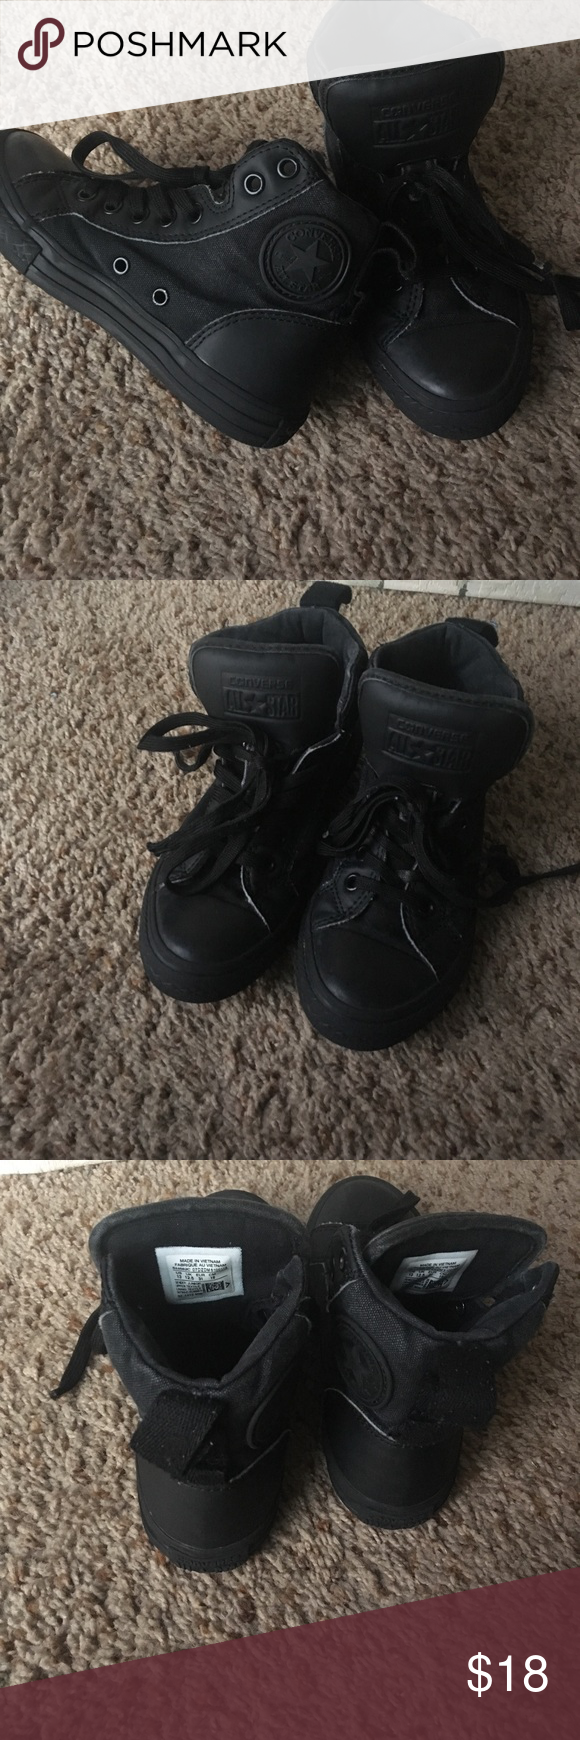 8e422559a2fd Black high top Converse All black converse. High top with thick tongue.  Great condition. Converse Shoes Sneakers